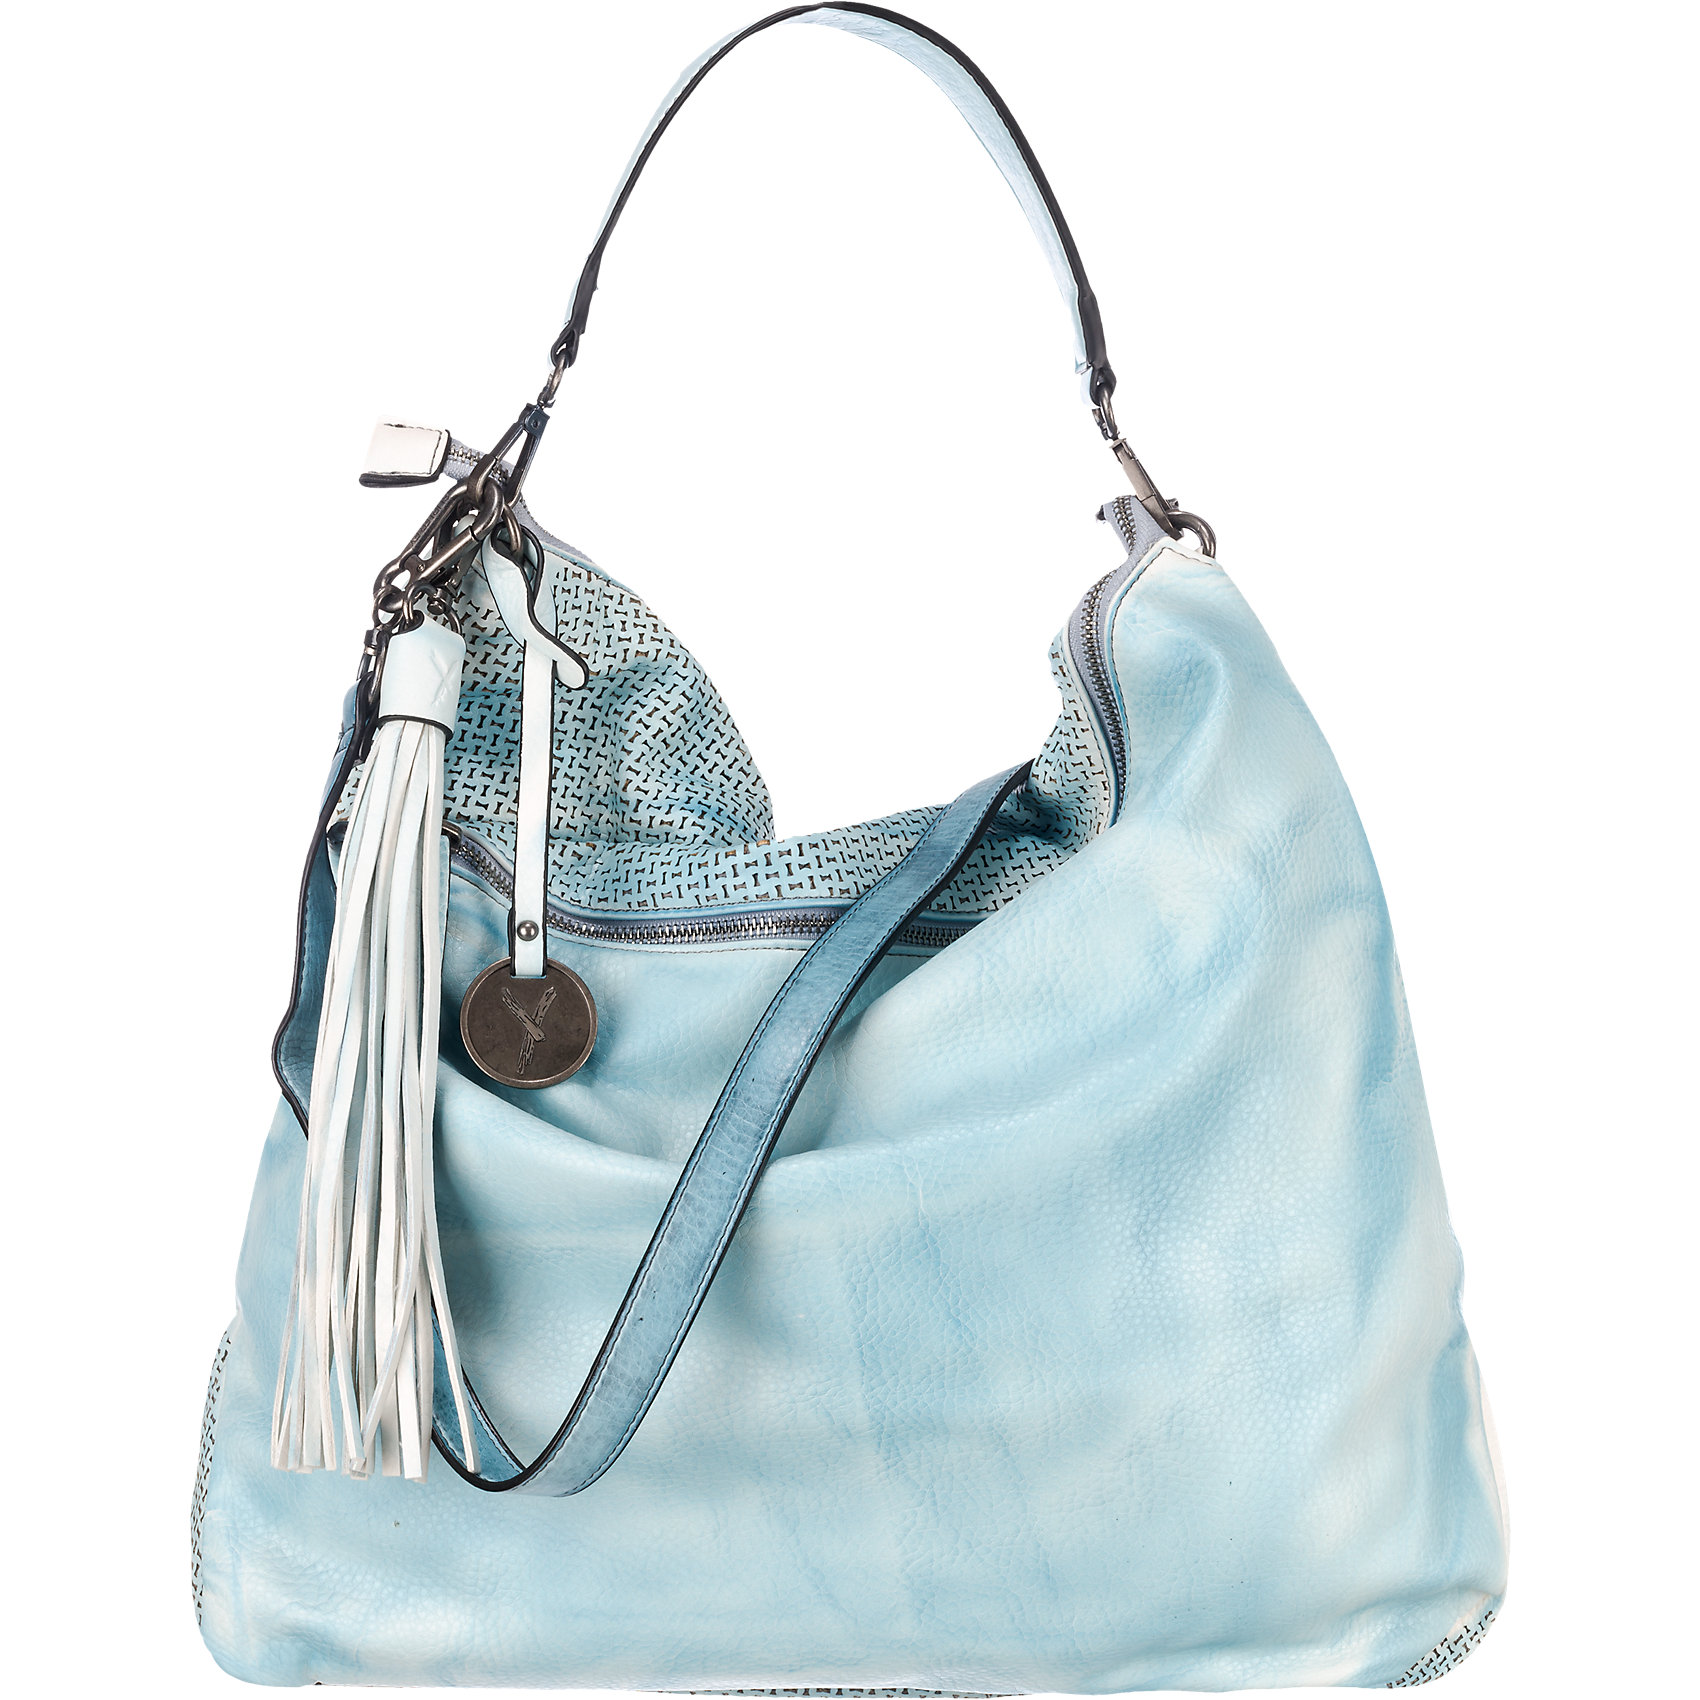 Hobo Bag Roxy blue Suri Frey 9hszMTlTAo